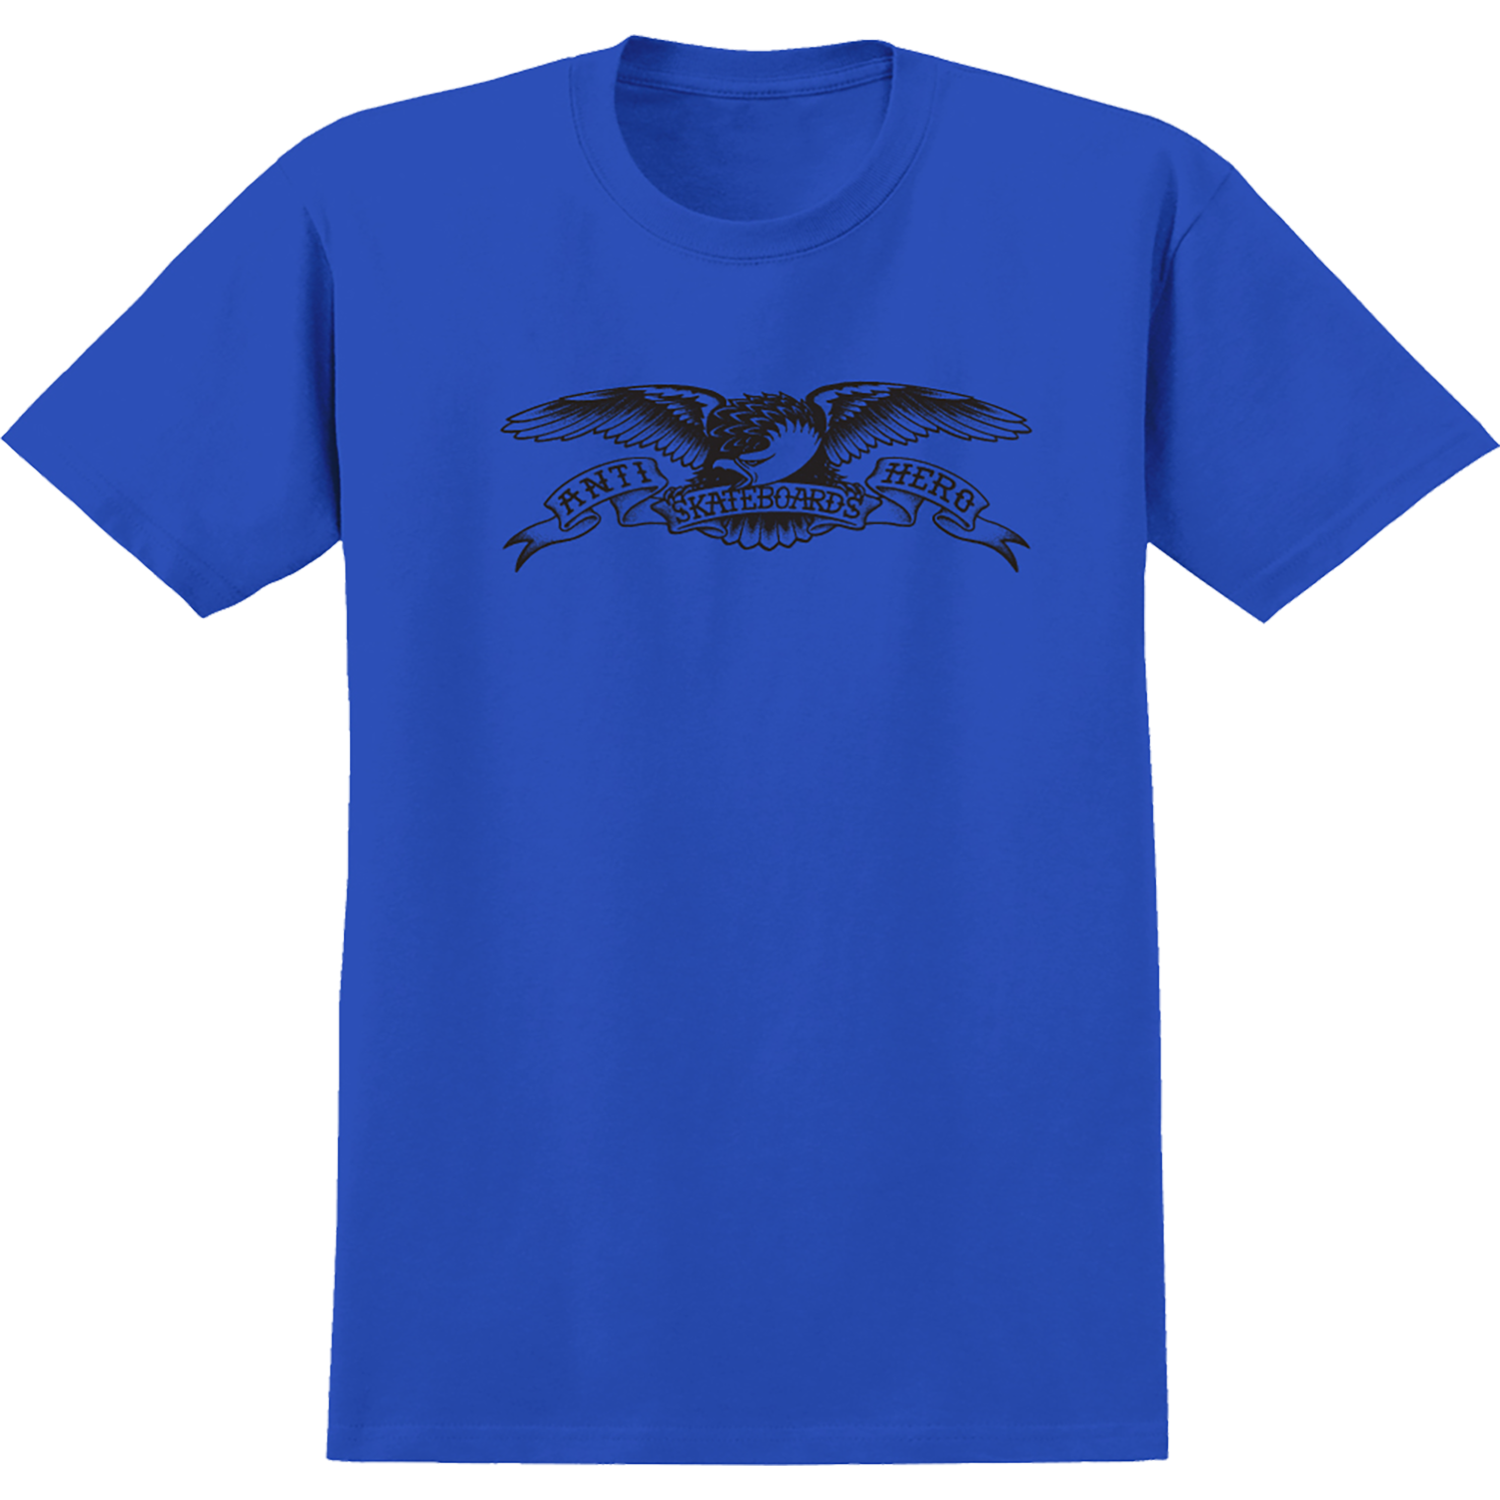 Anti Hero Basic Eagle S/S Royal Blue Youth Tee